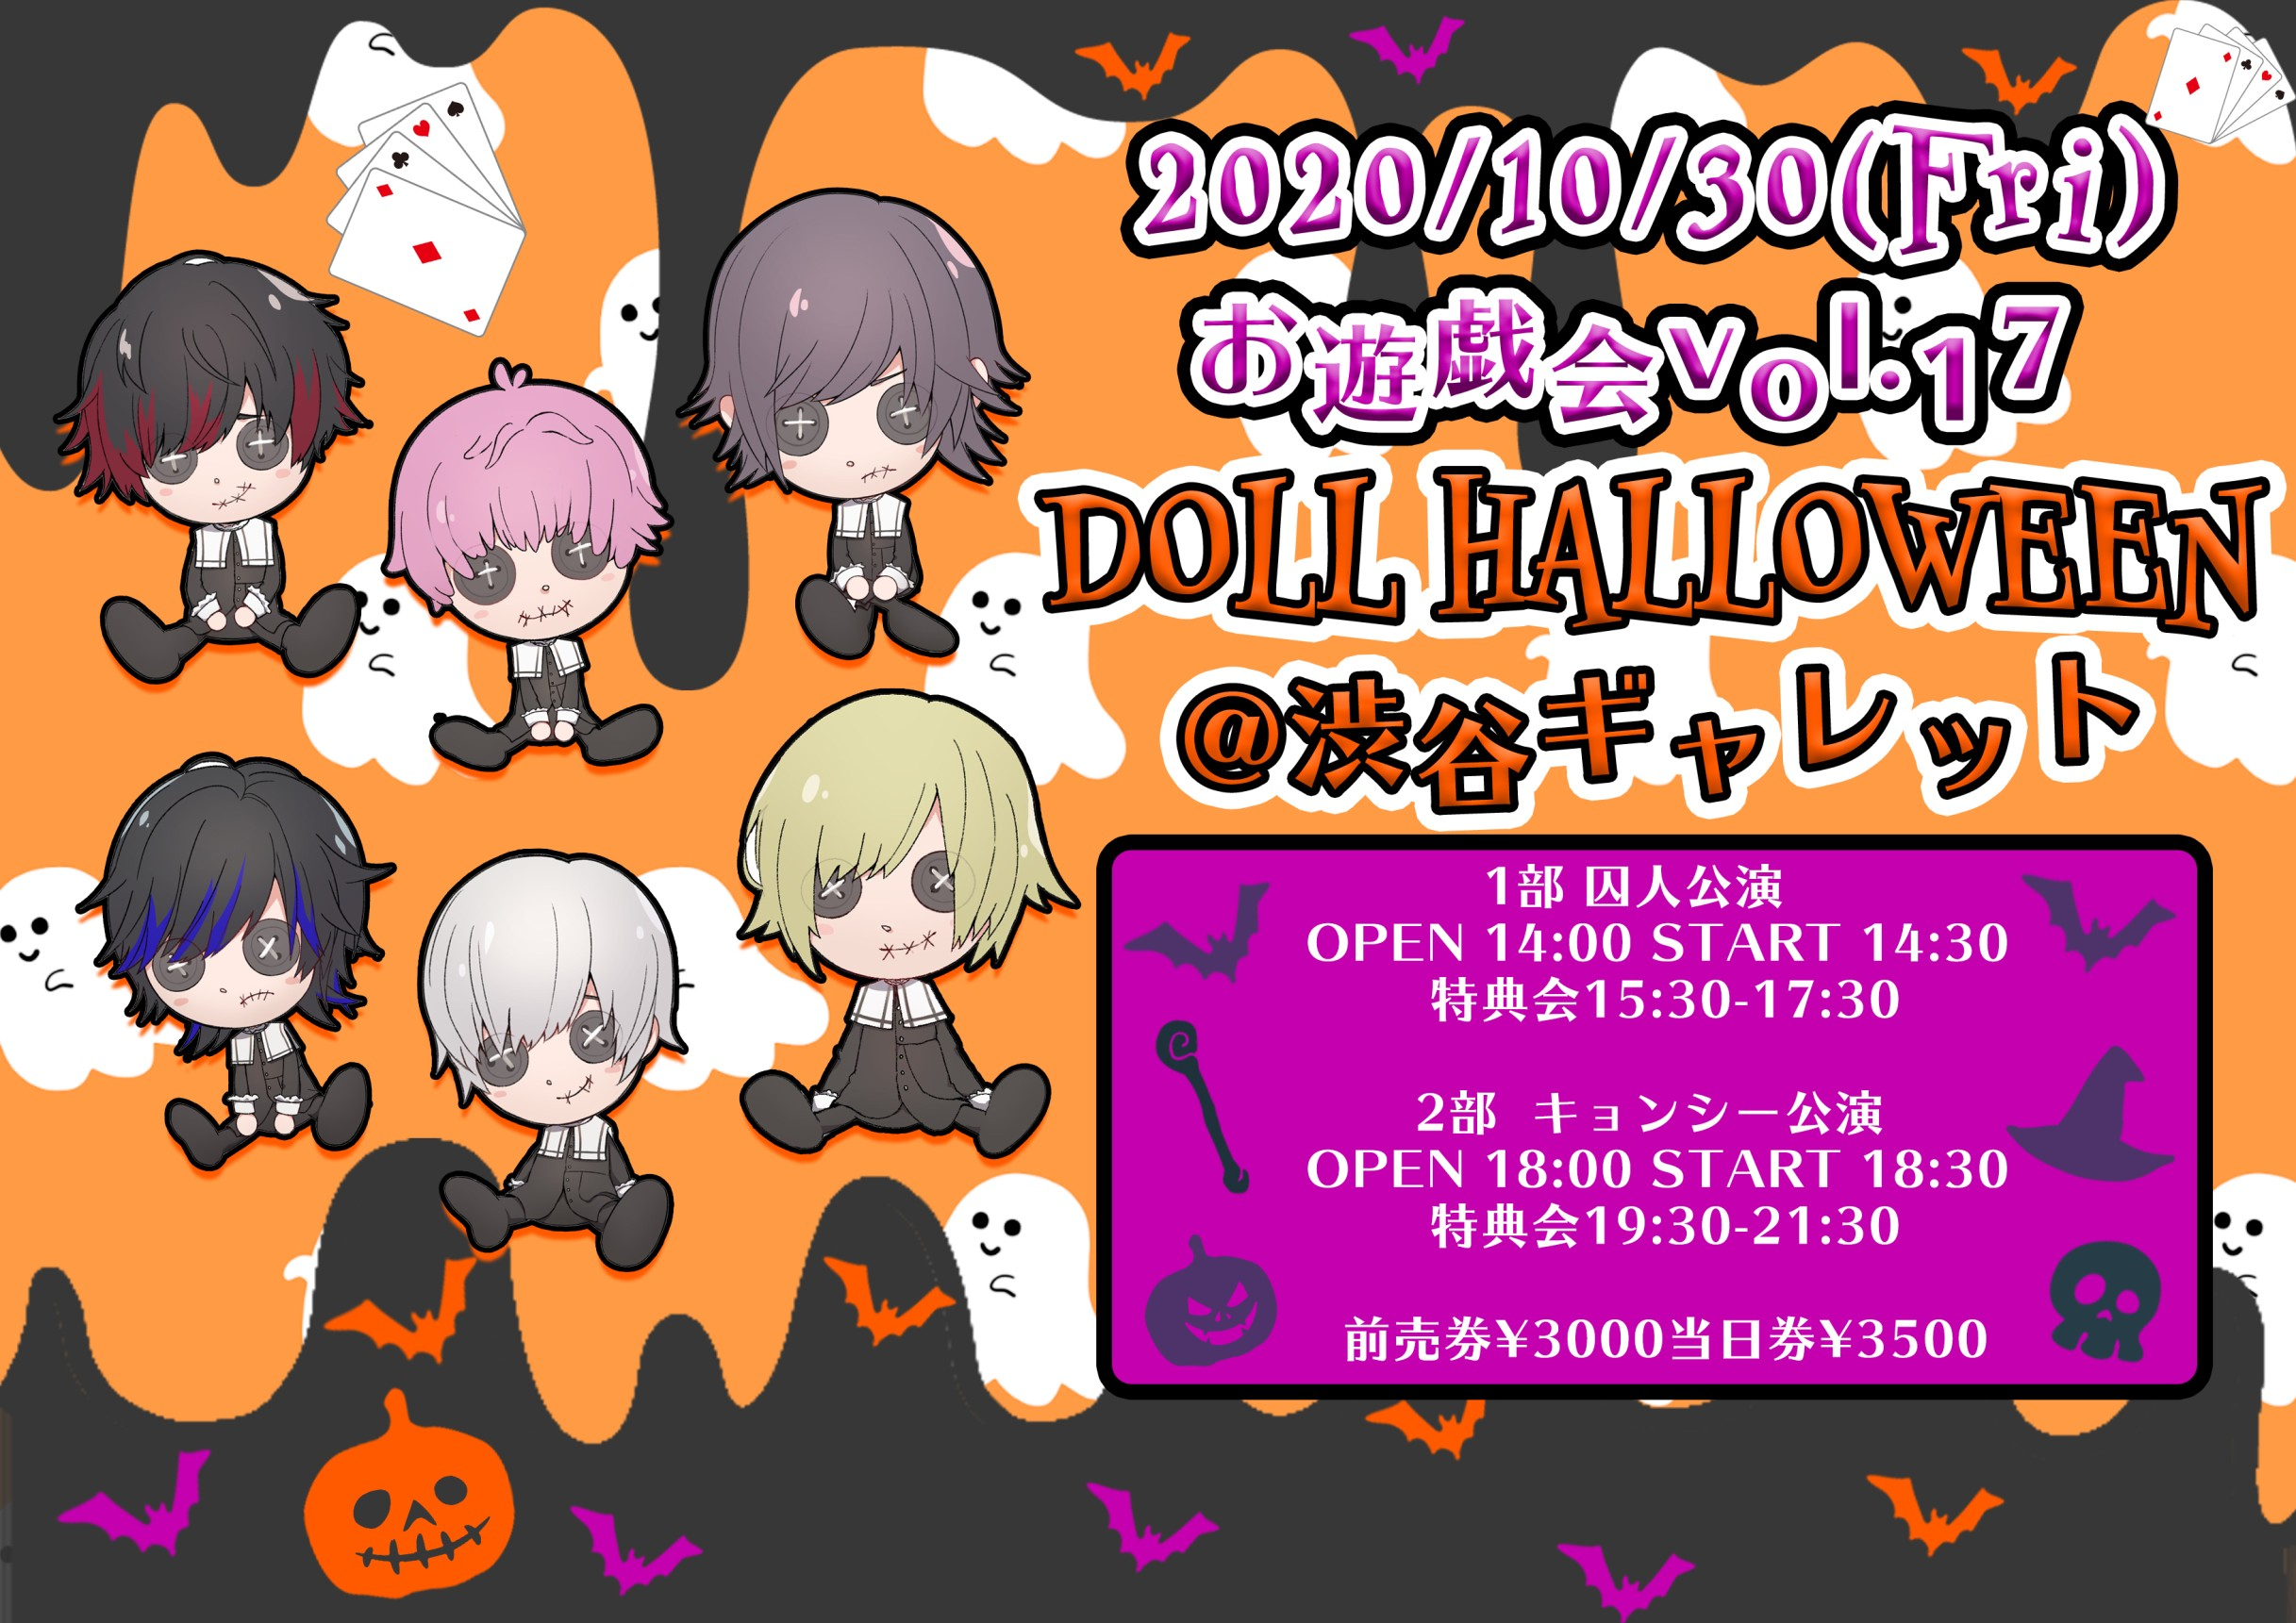 お遊戯会vol.17〜DOLL HALLOWEEN〜【1部】